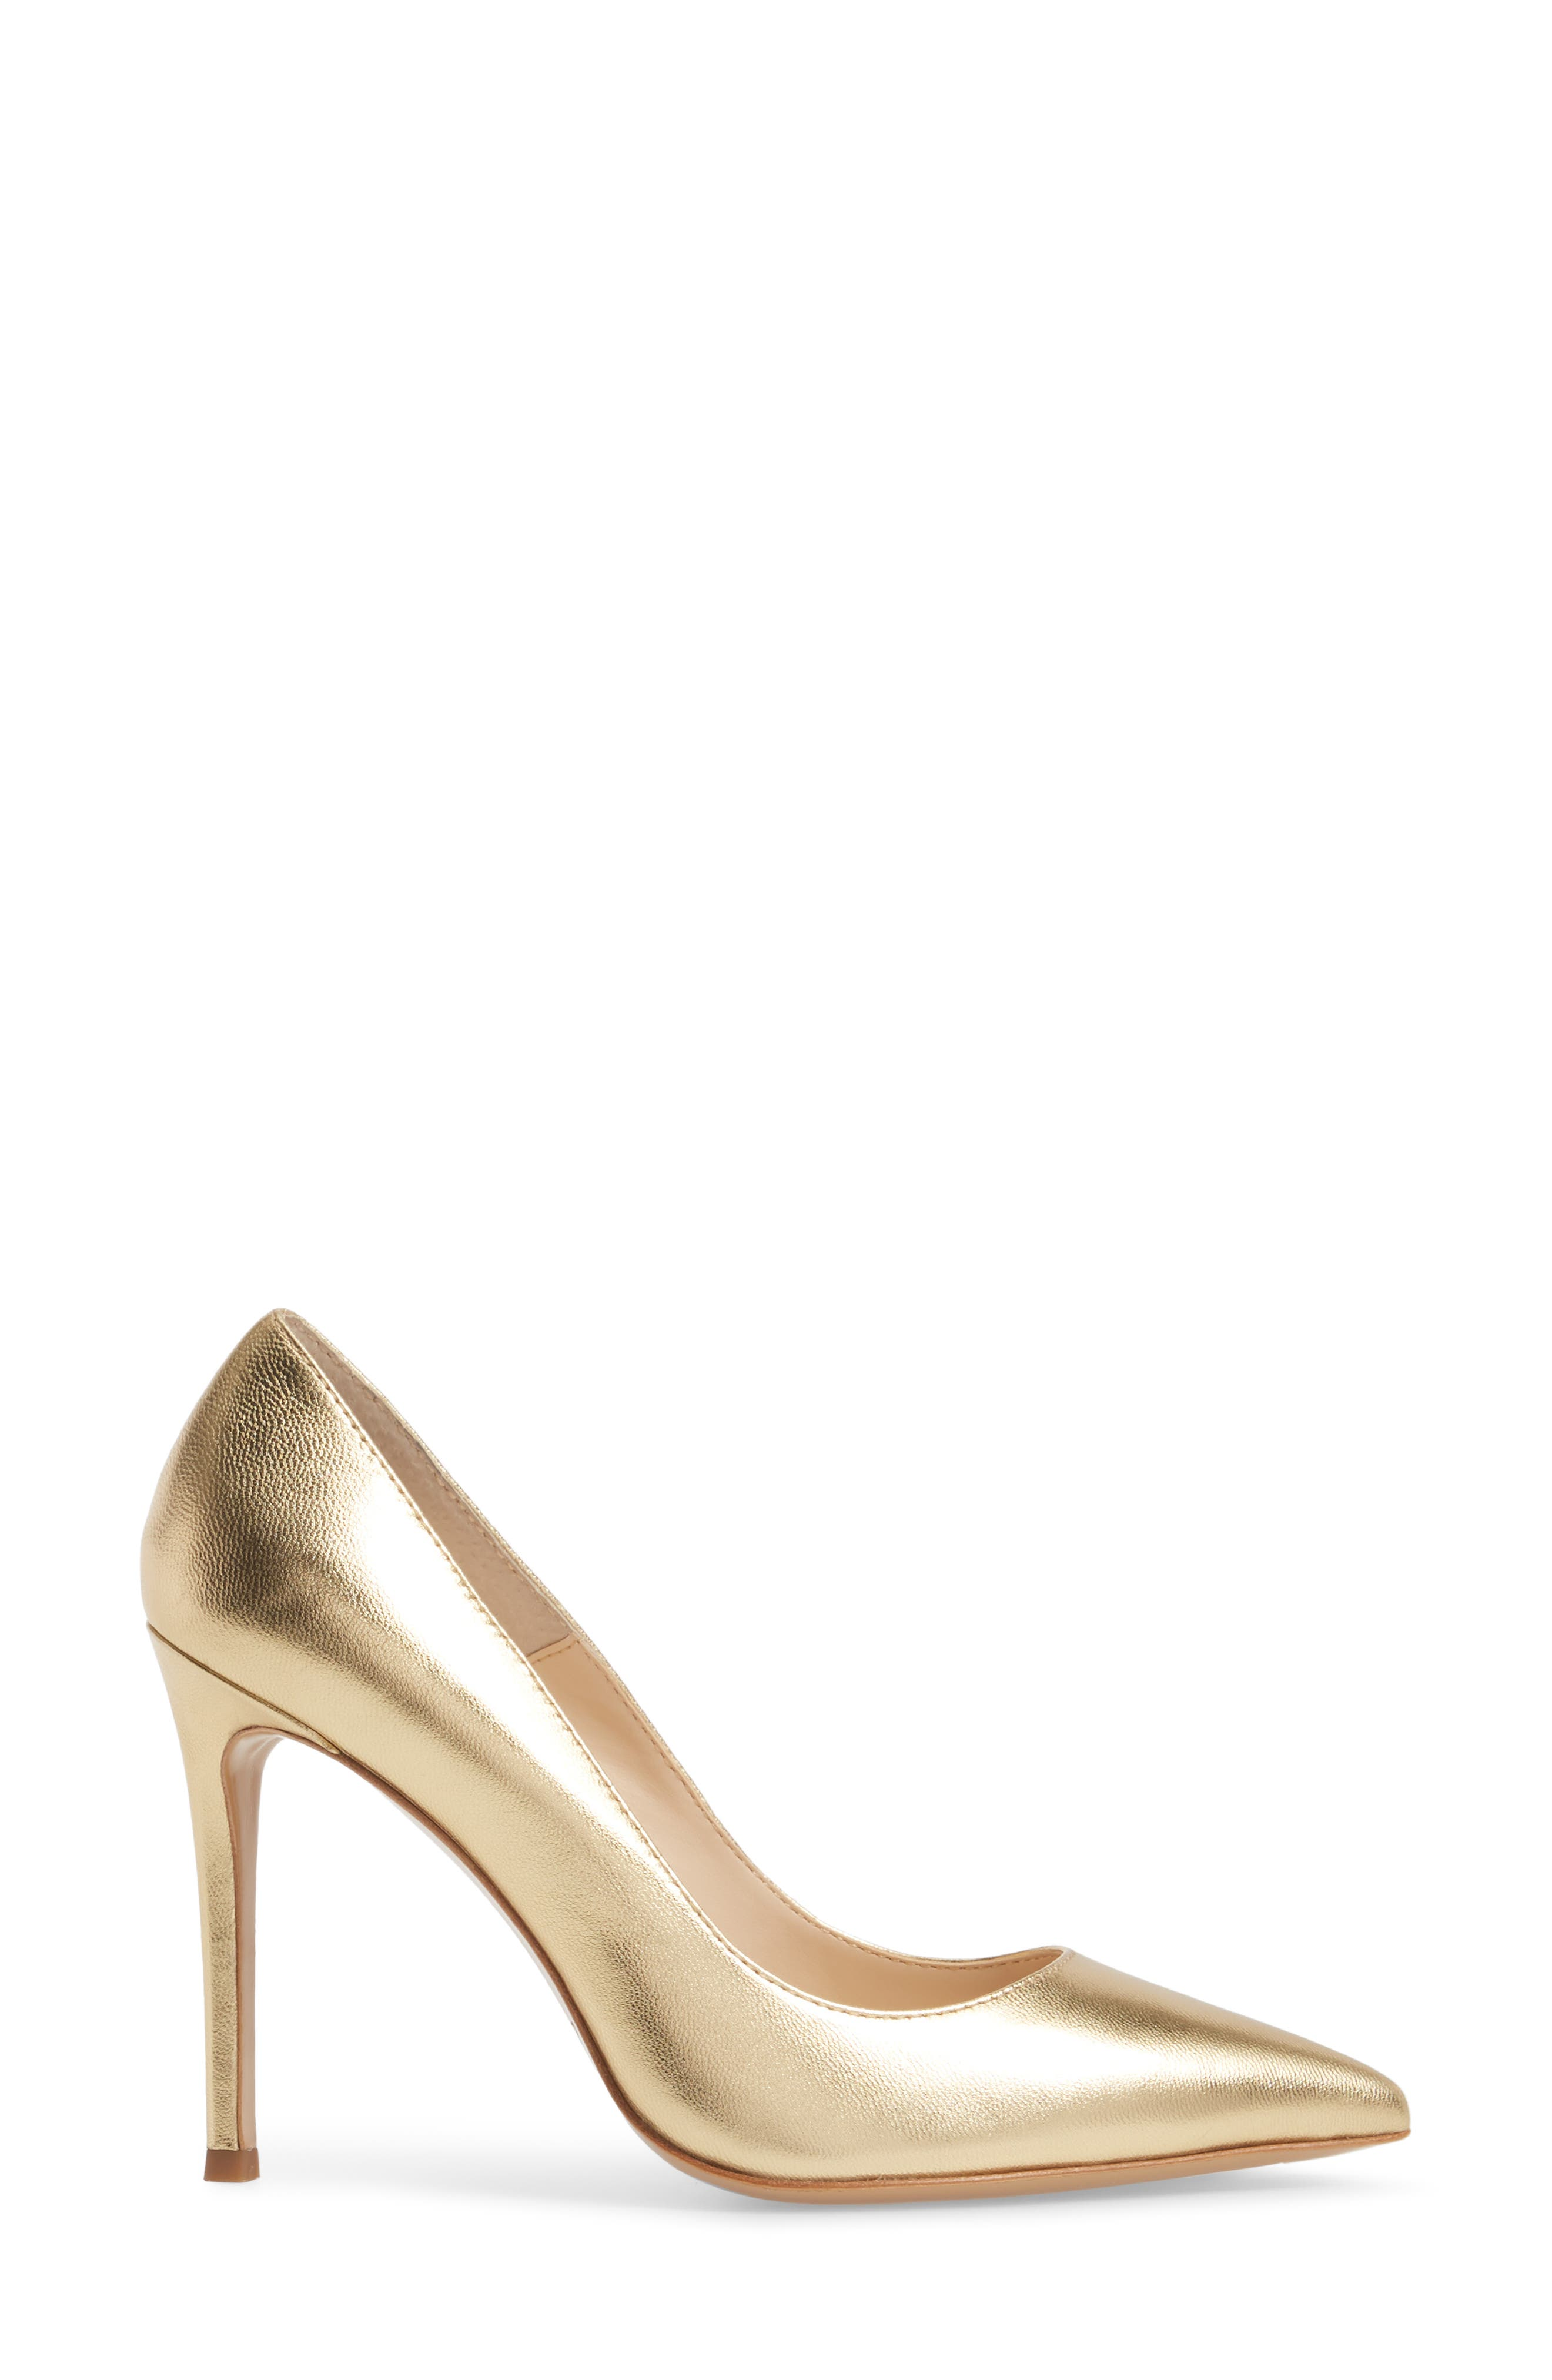 Calessi Pointy Toe Pump,                             Alternate thumbnail 3, color,                             GOLD LEATHER